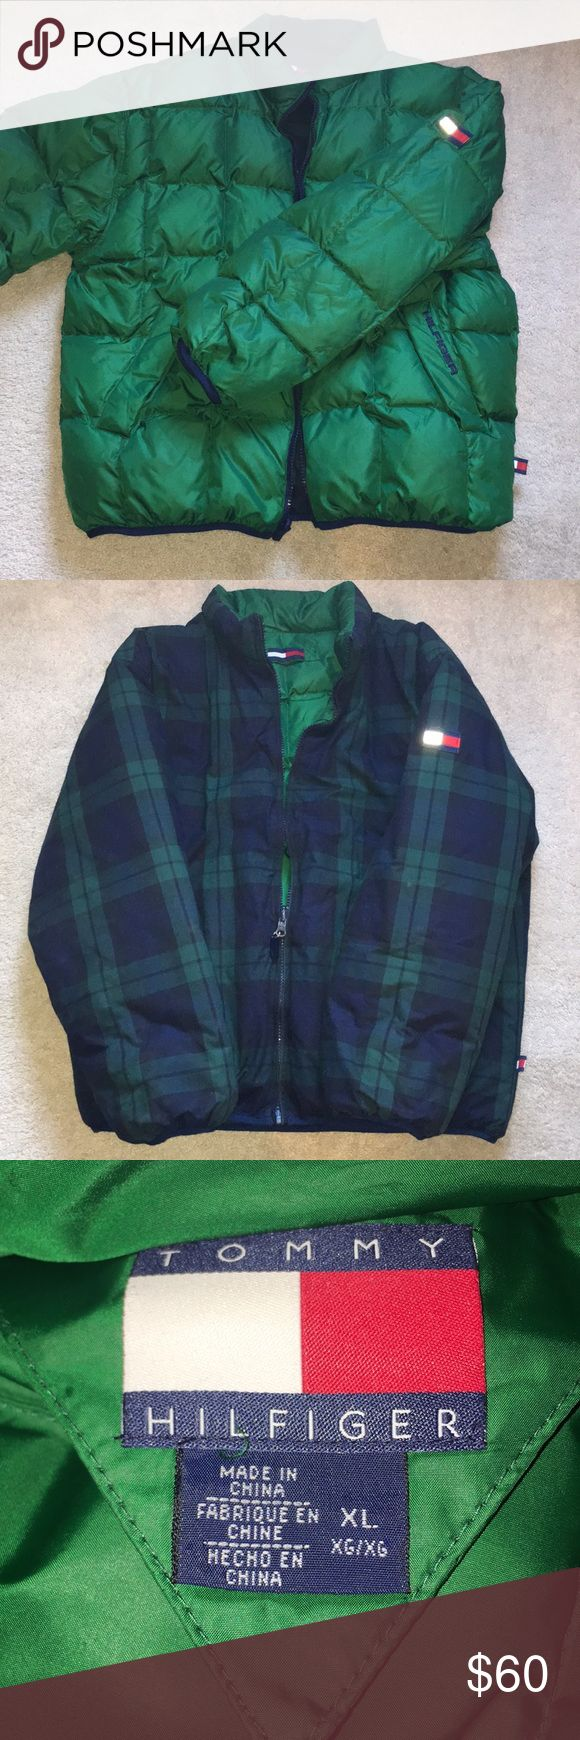 Reversible Jacket Tommy Hilfiger men's XL down jacket; reversible; 2 pockets inside and outside; very warm for weather! Tommy Hilfiger Jackets & Coats Puffers